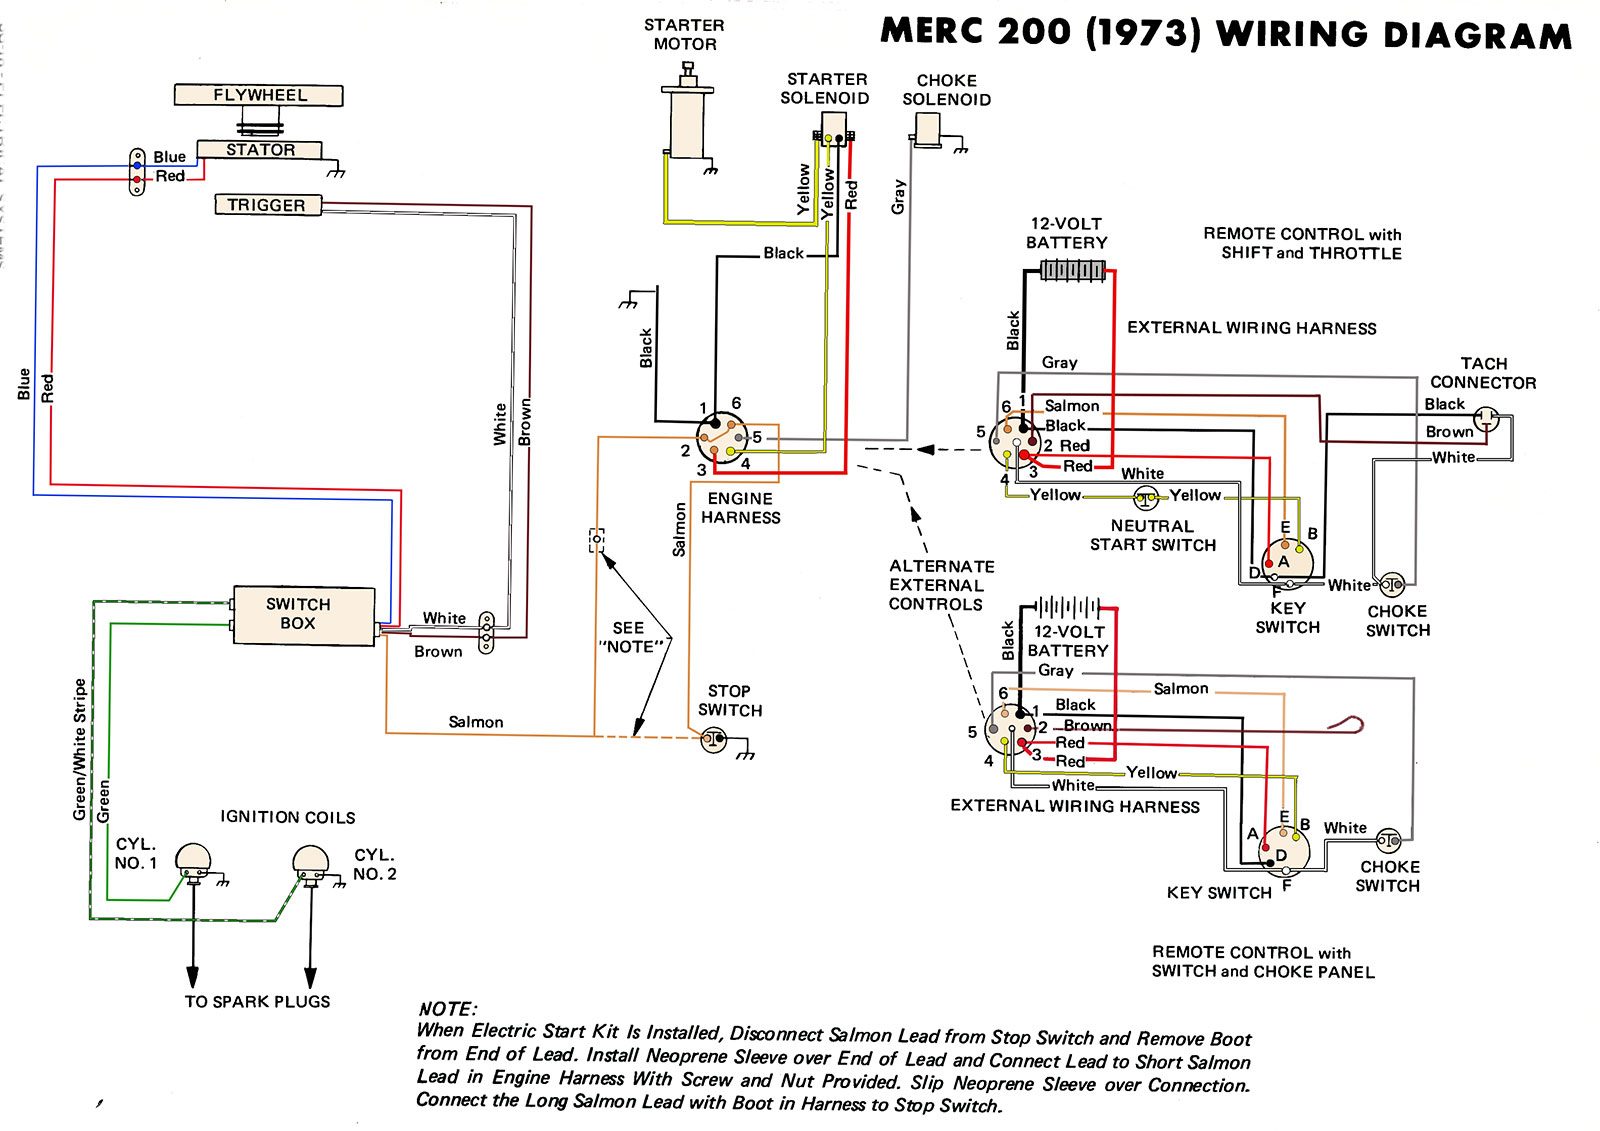 hight resolution of 2004 mercury outboard wiring harness wiring diagram rh cleanprosperity co 139qmb 50cc scooter wiring diagram jonway